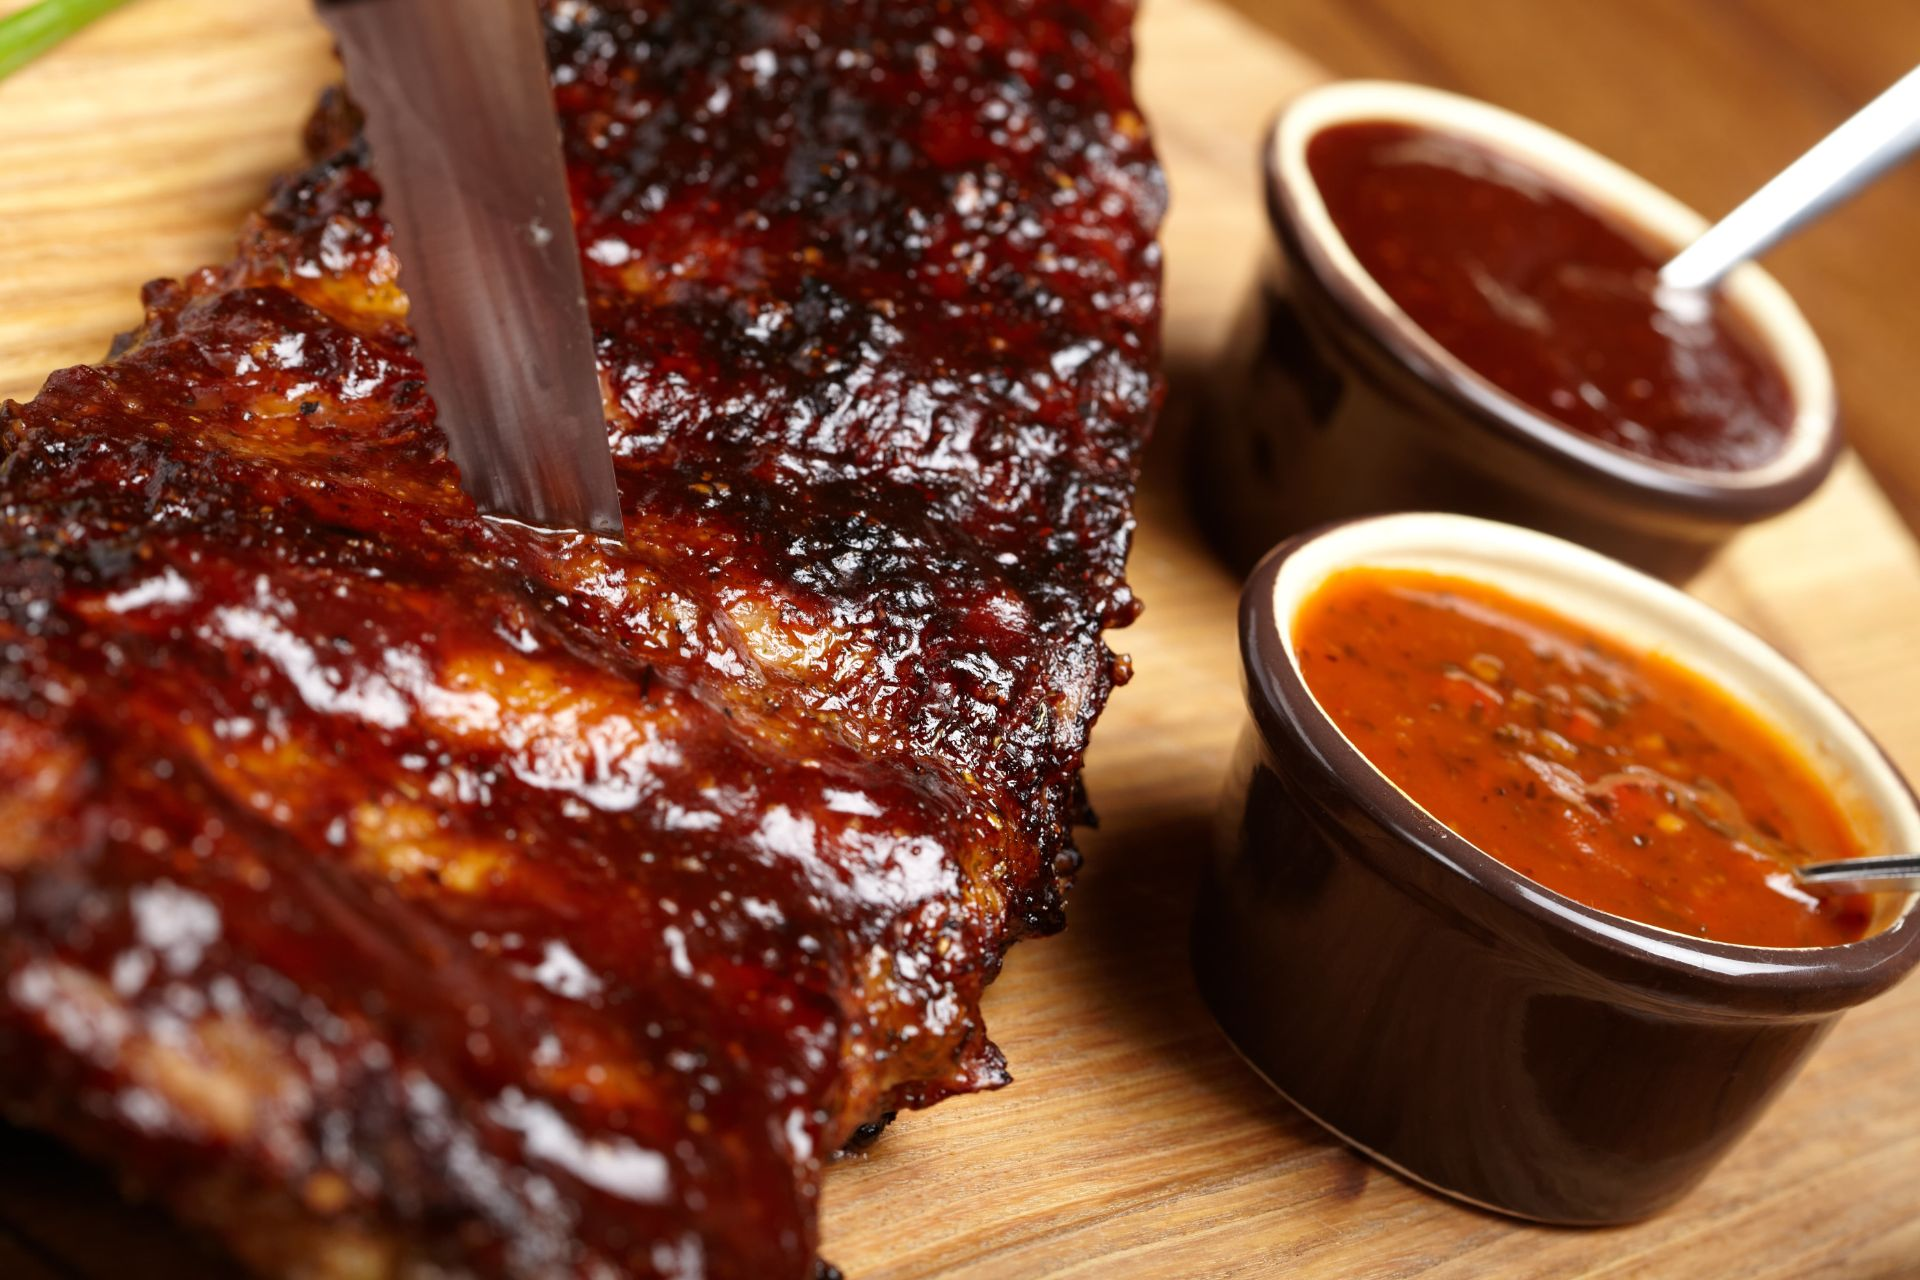 BBQ ribs on a wood table-top with small containers of sauce on the side